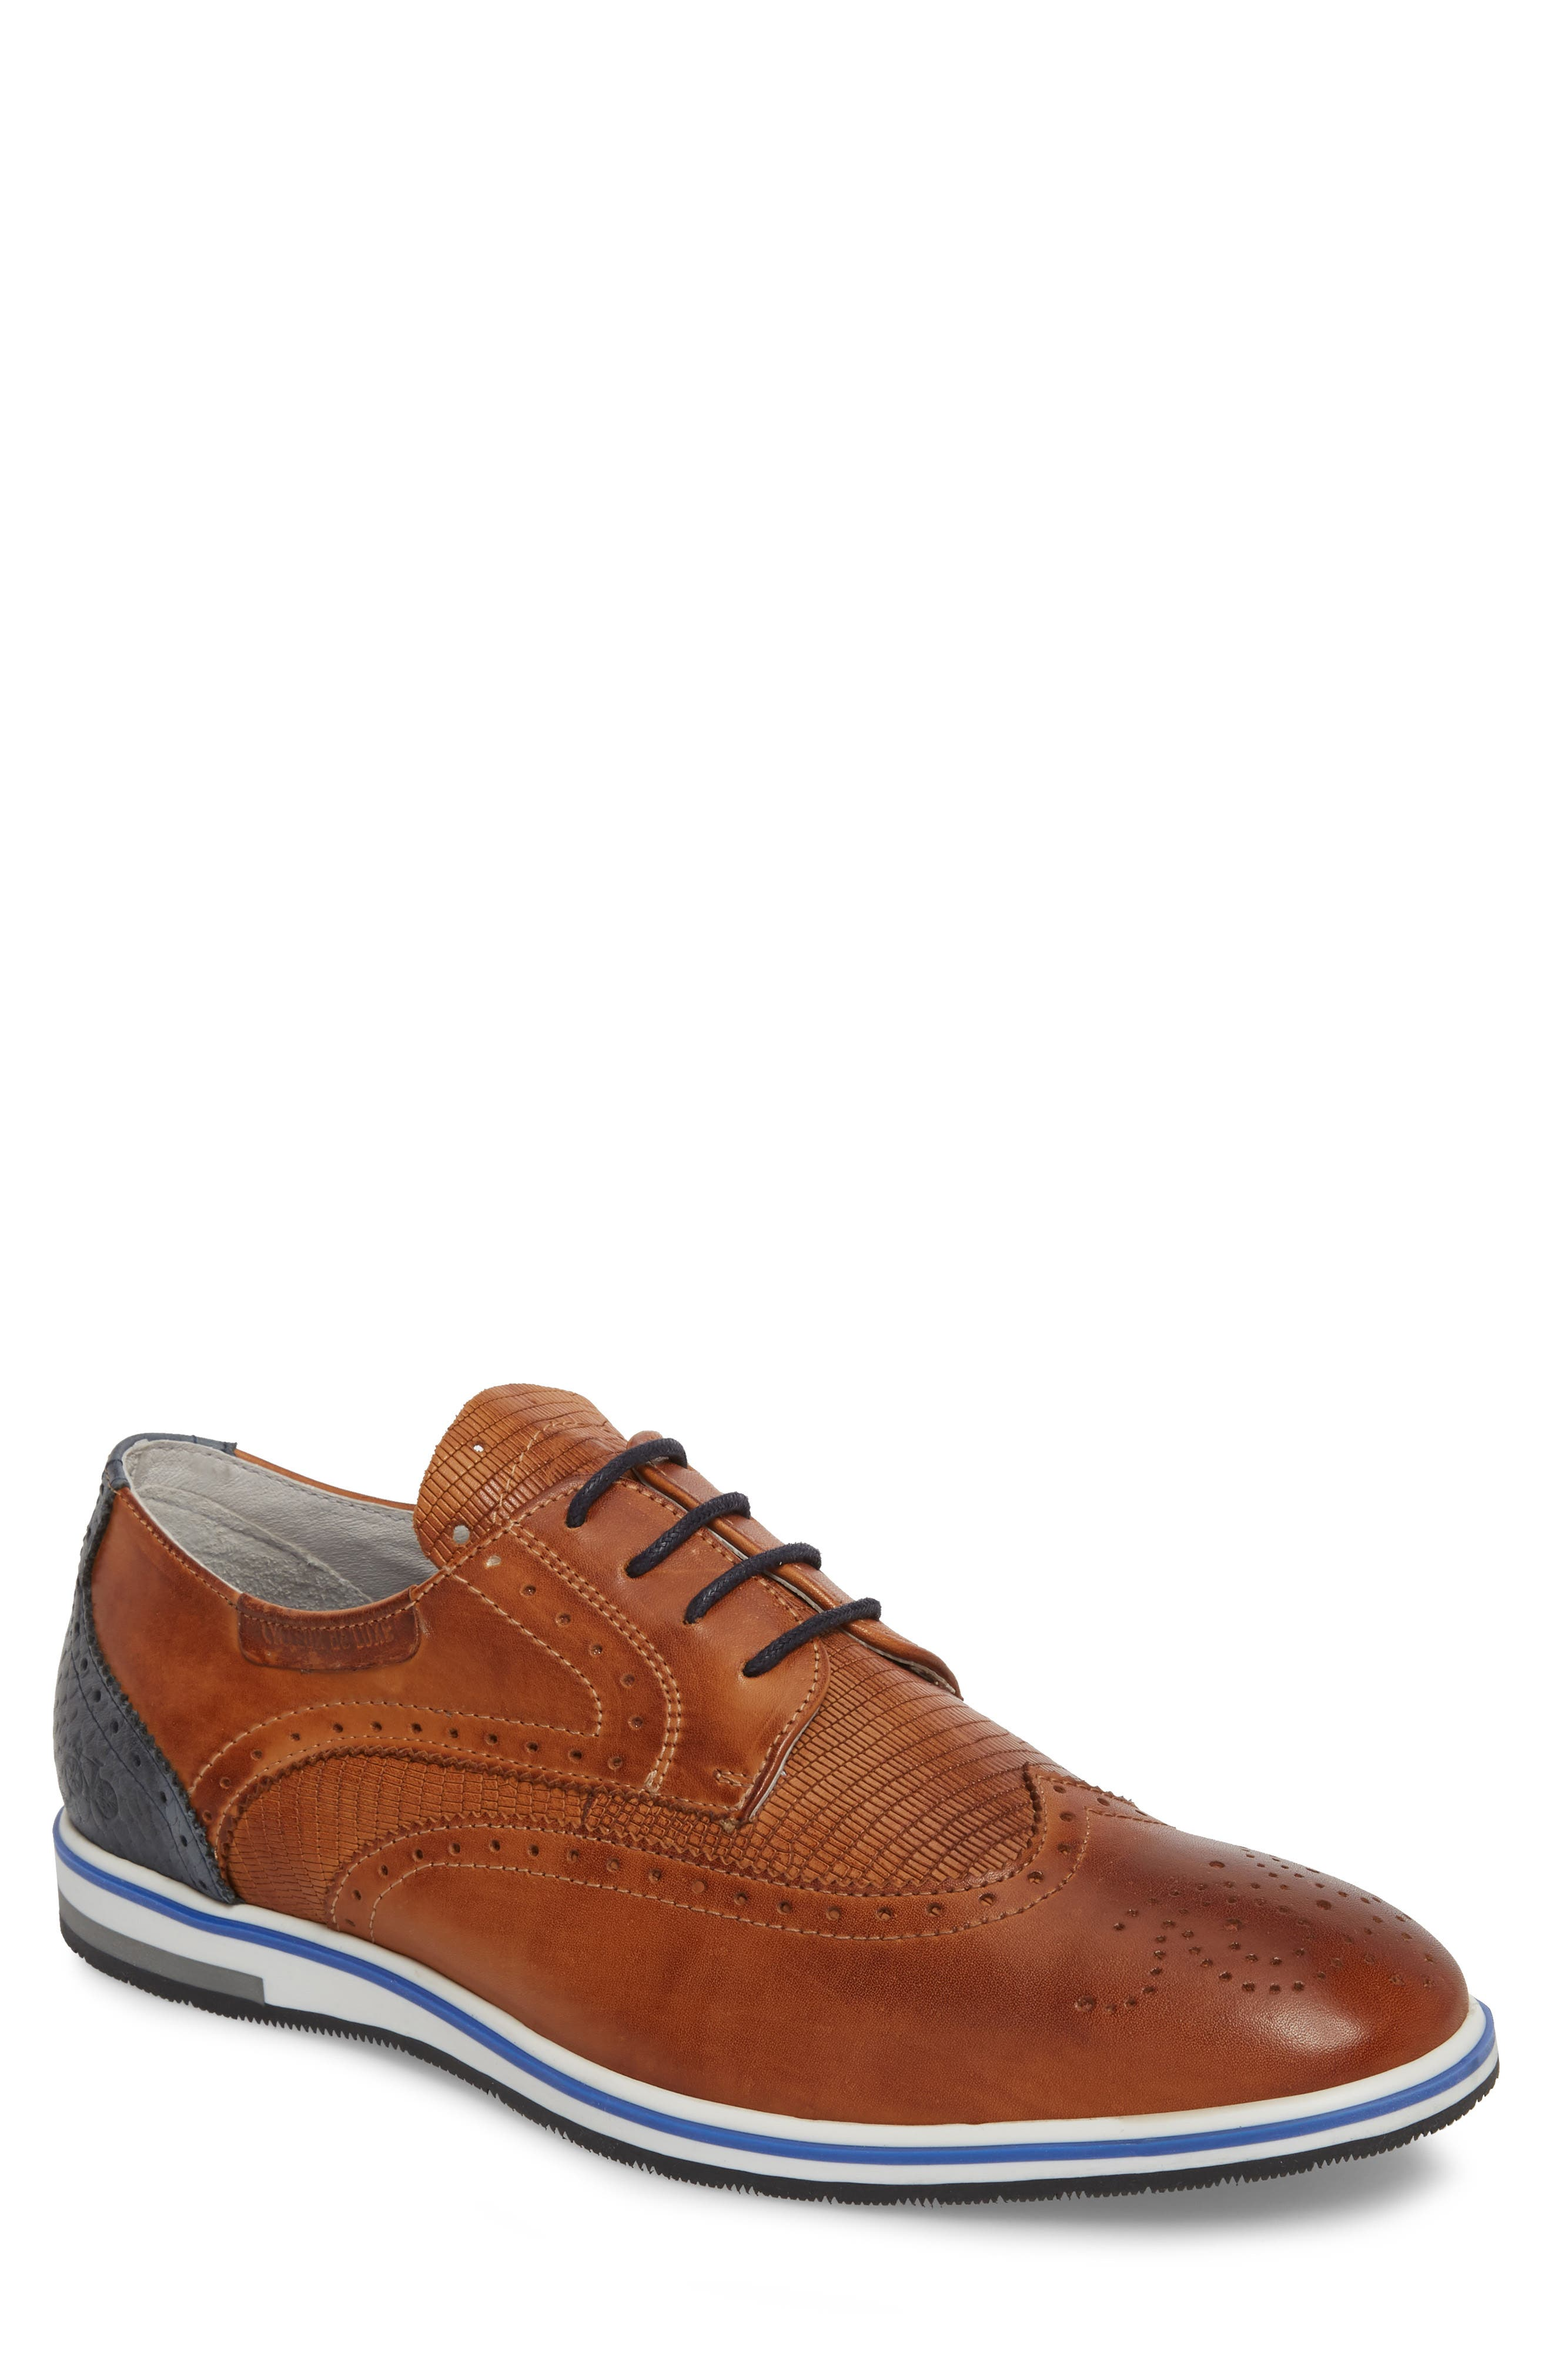 Pulsano Textured Wingtip,                             Main thumbnail 1, color,                             Cognac/ Denim Leather